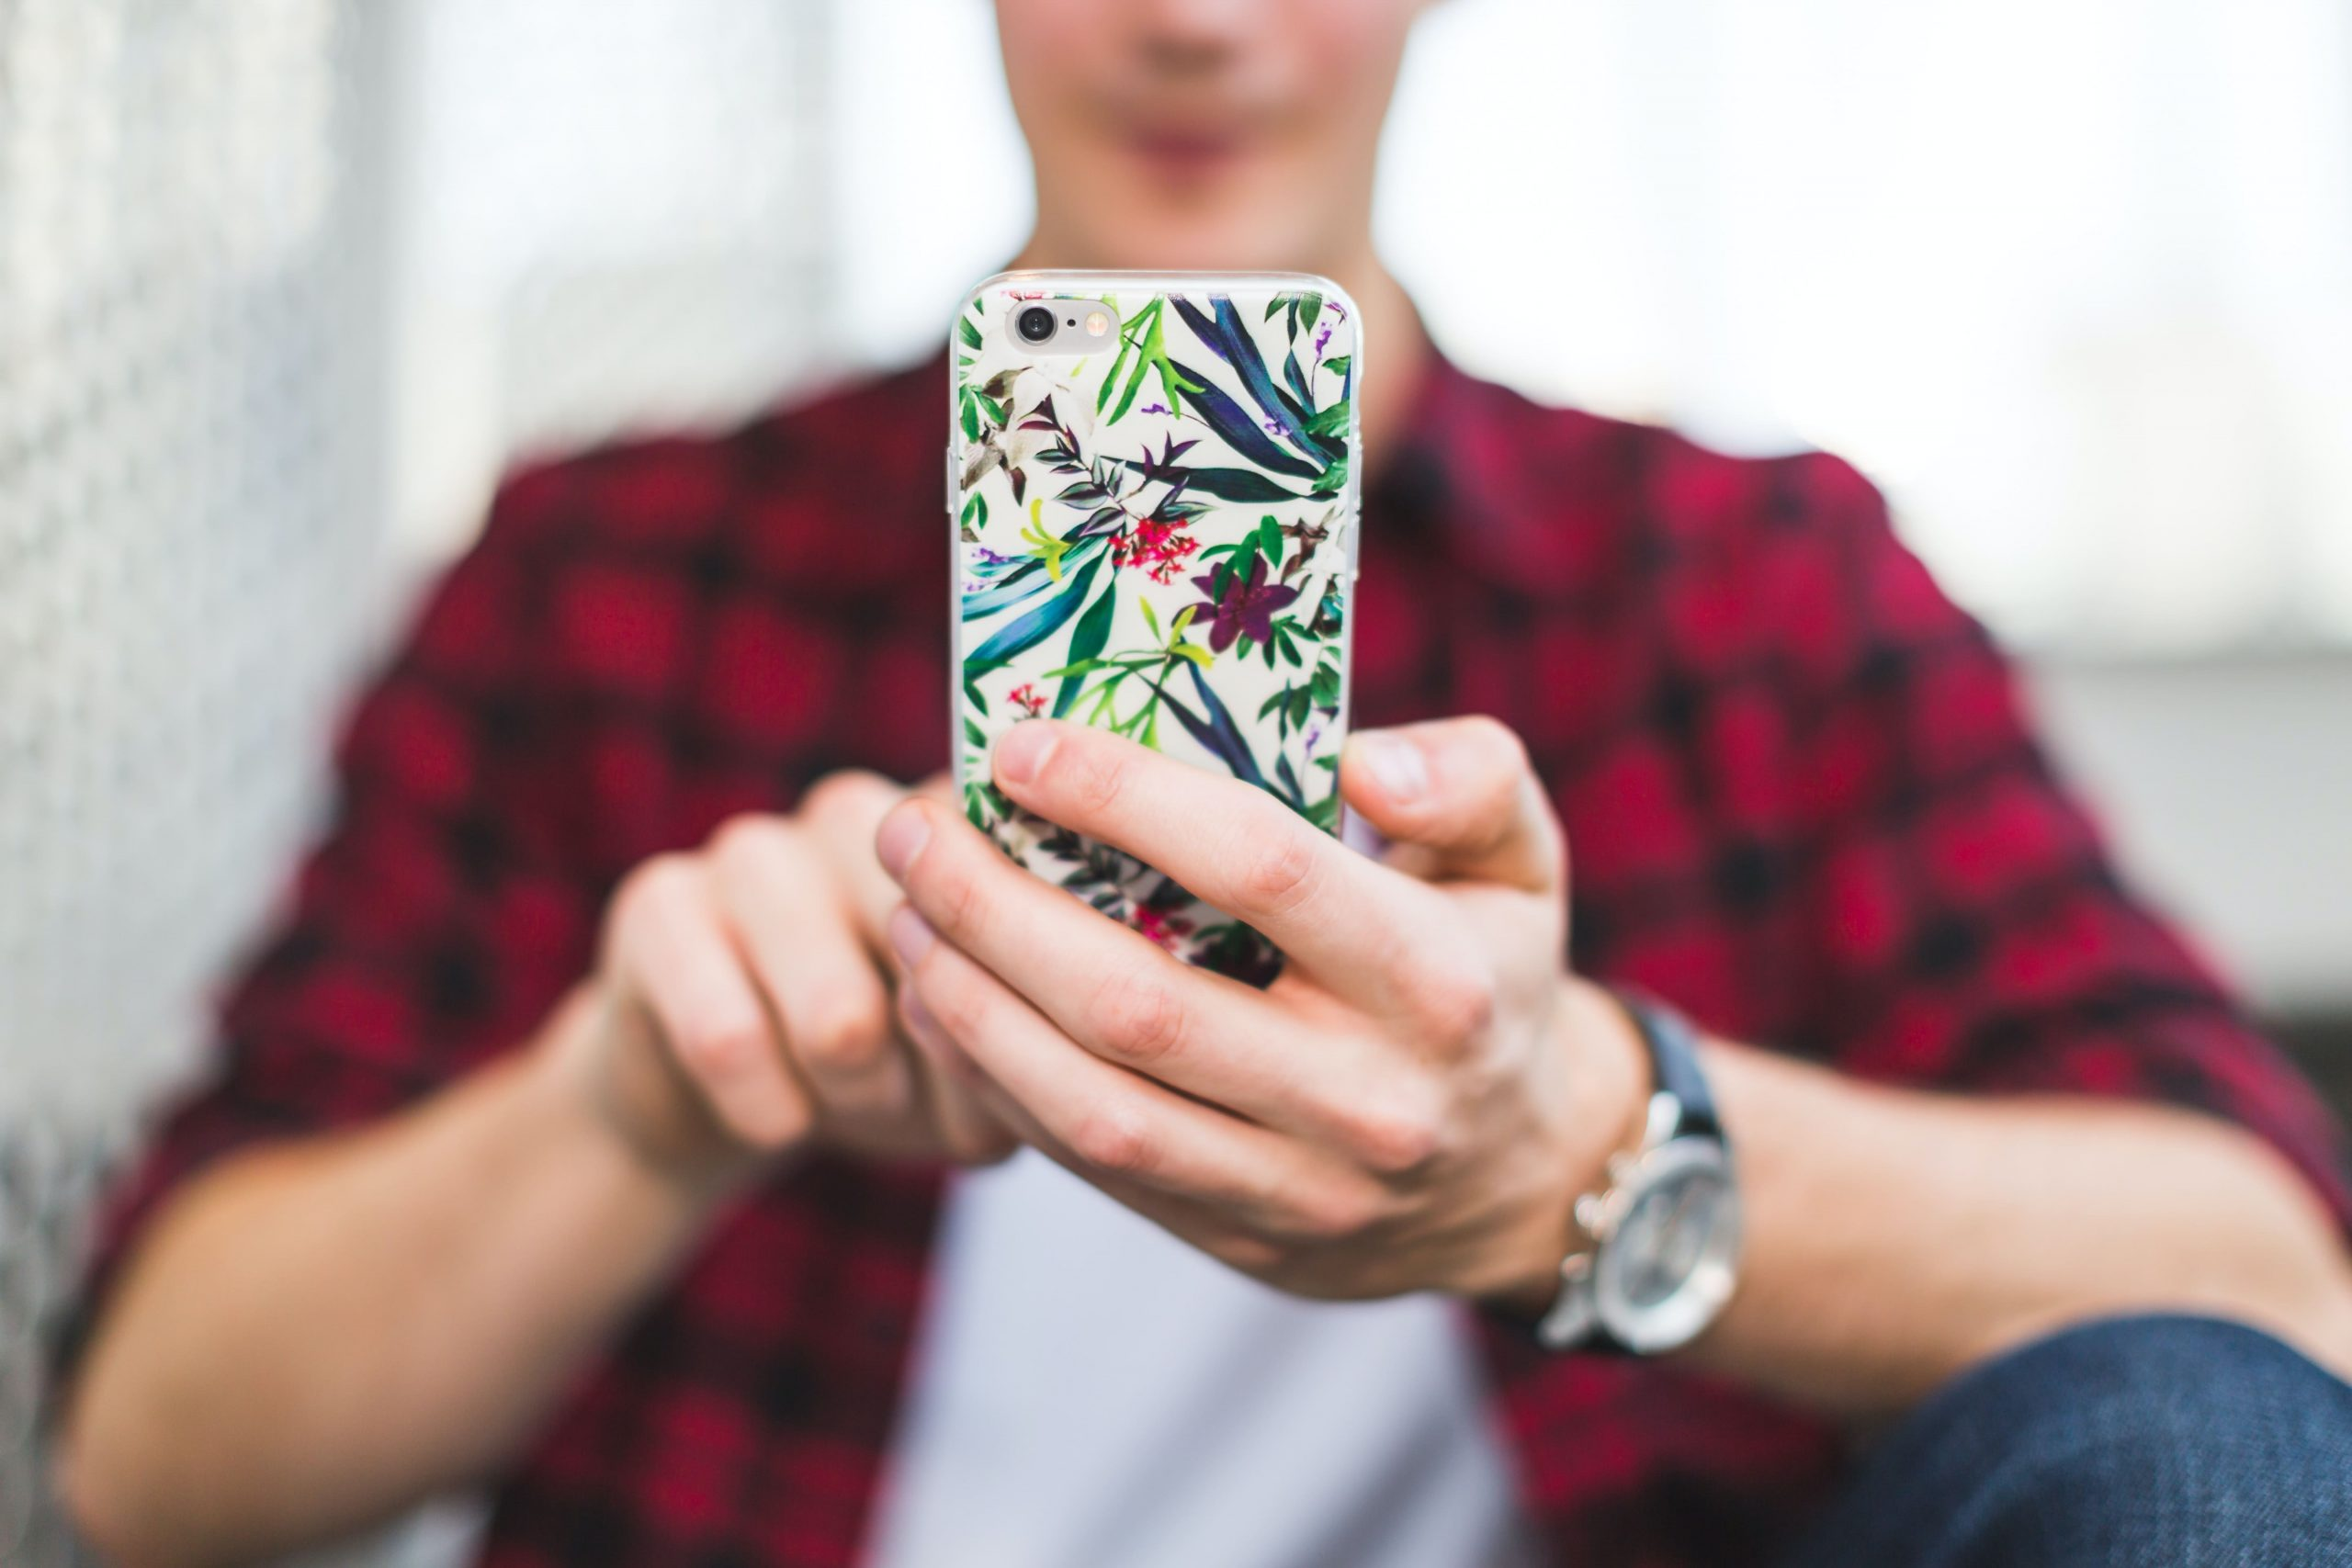 10+ Best Mobile Covers At 99 India 2020